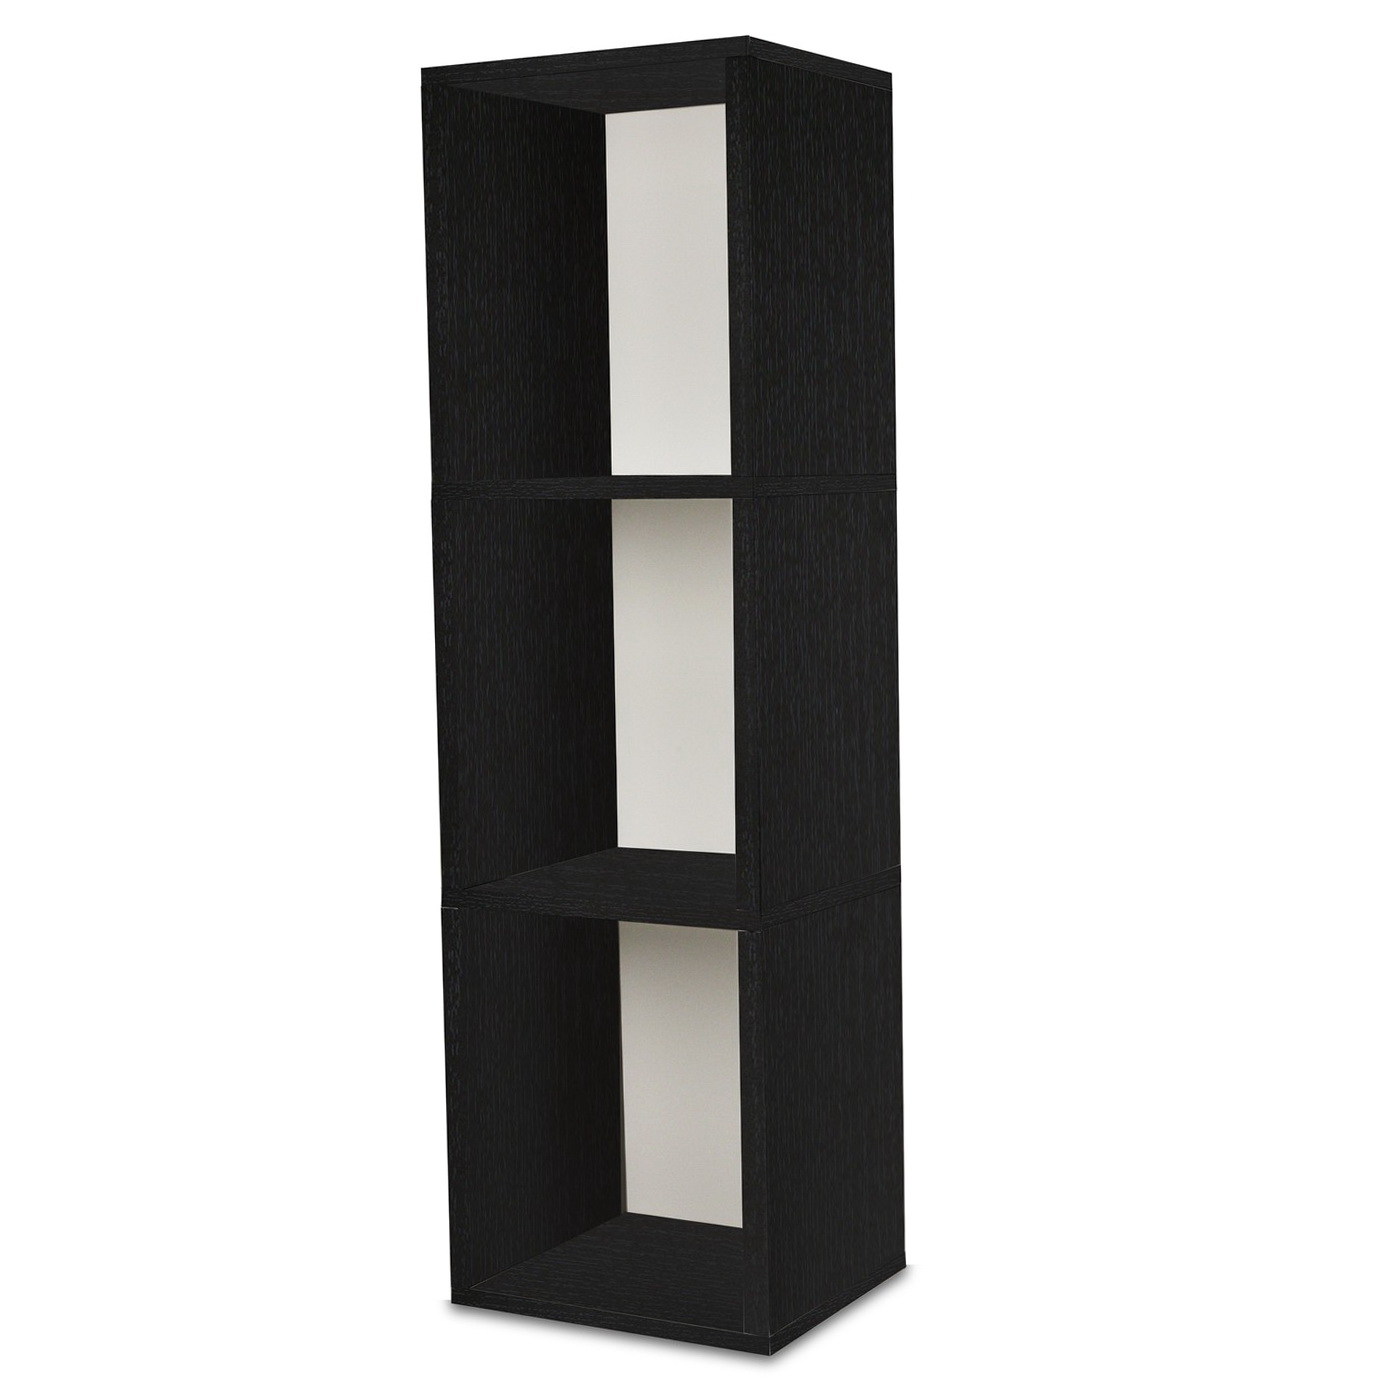 3 Shelf Bookcase Black